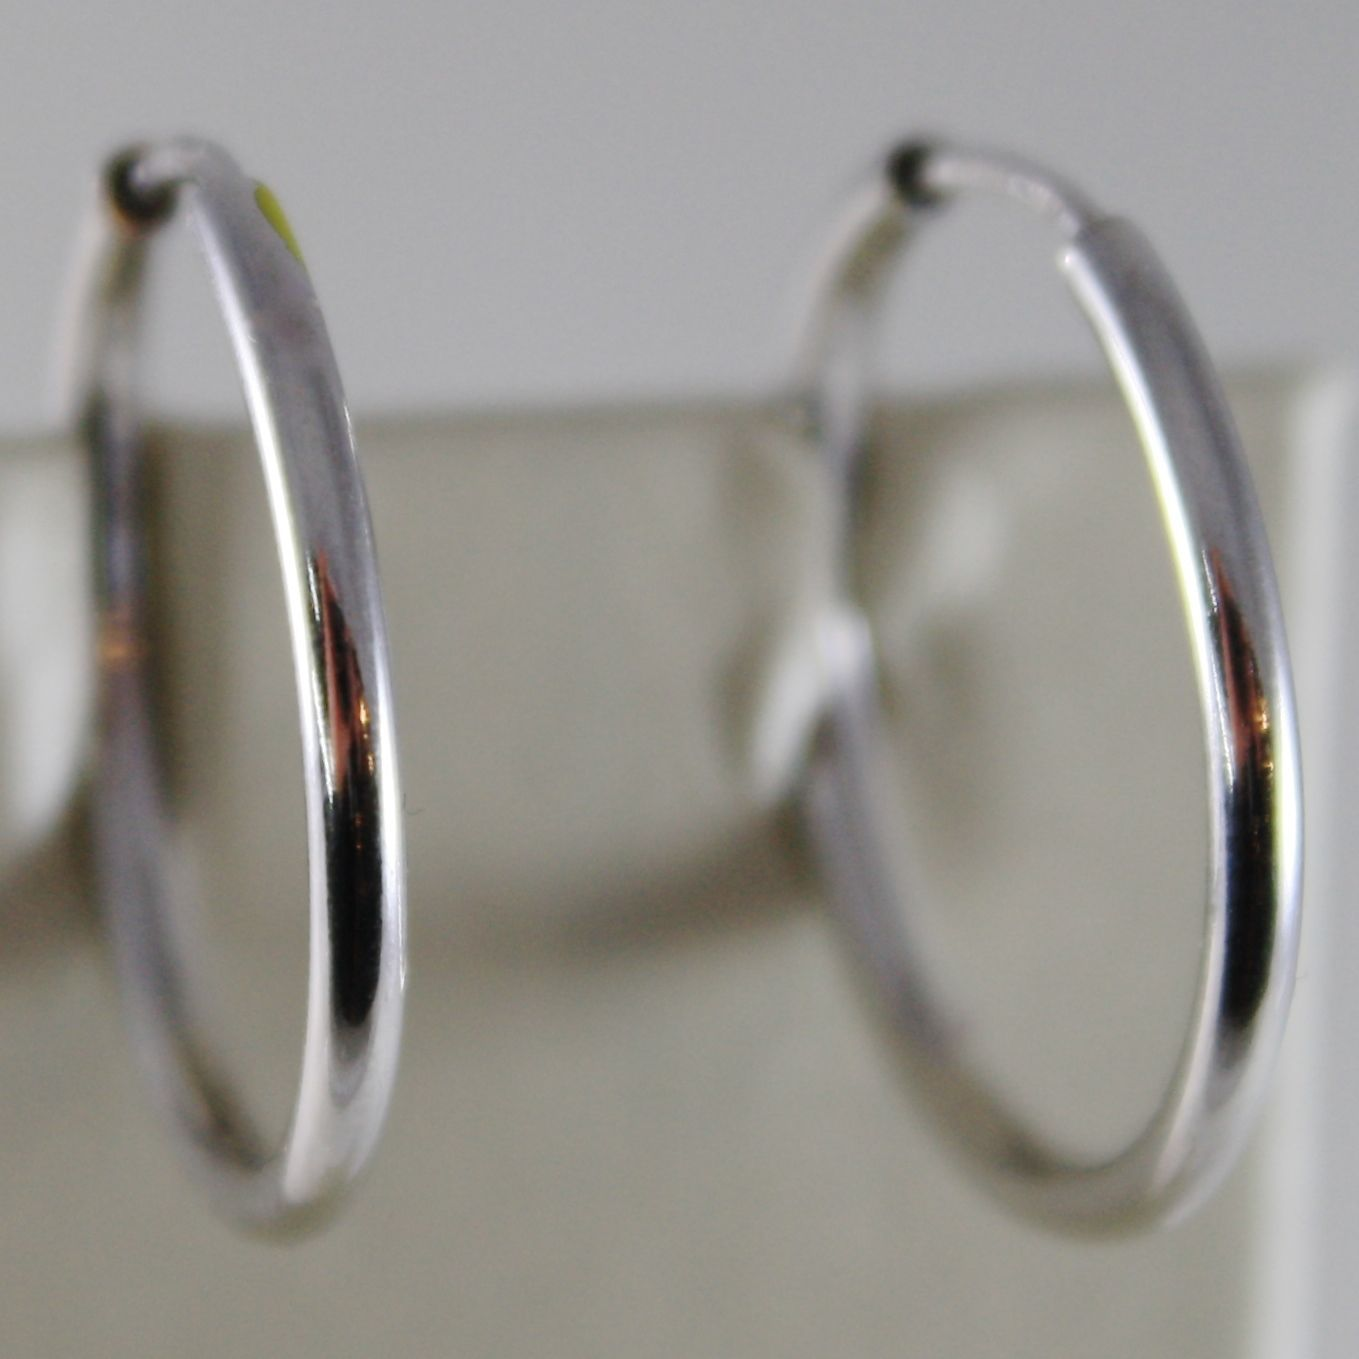 18K WHITE GOLD EARRINGS CIRCLE HOOP 22 MM 0.87 INCHES DIAMETER MADE IN ITALY